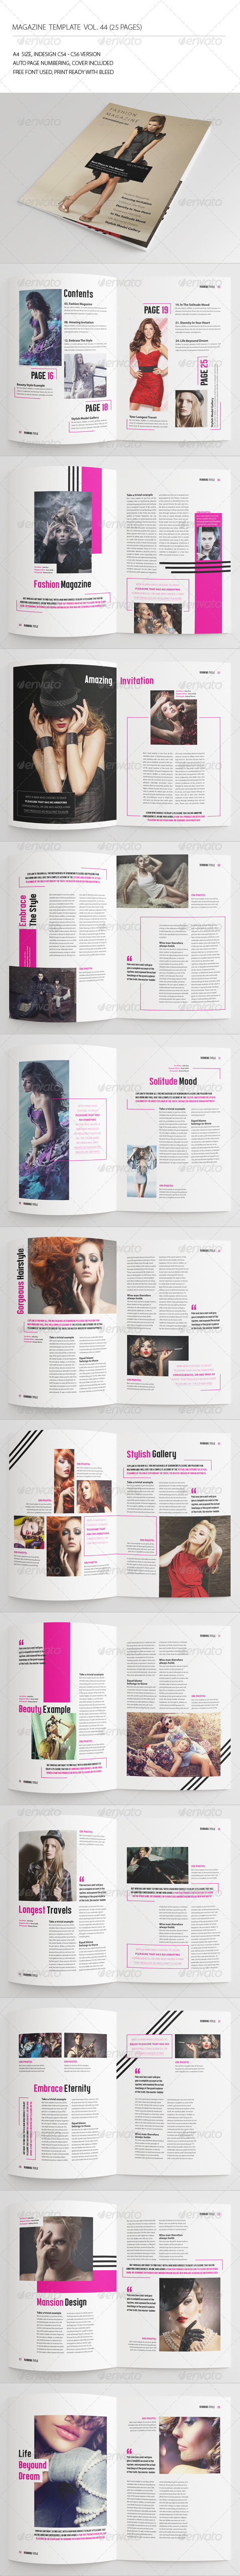 GraphicRiver 25 Pages Fashion Magazine Vol44 7457822